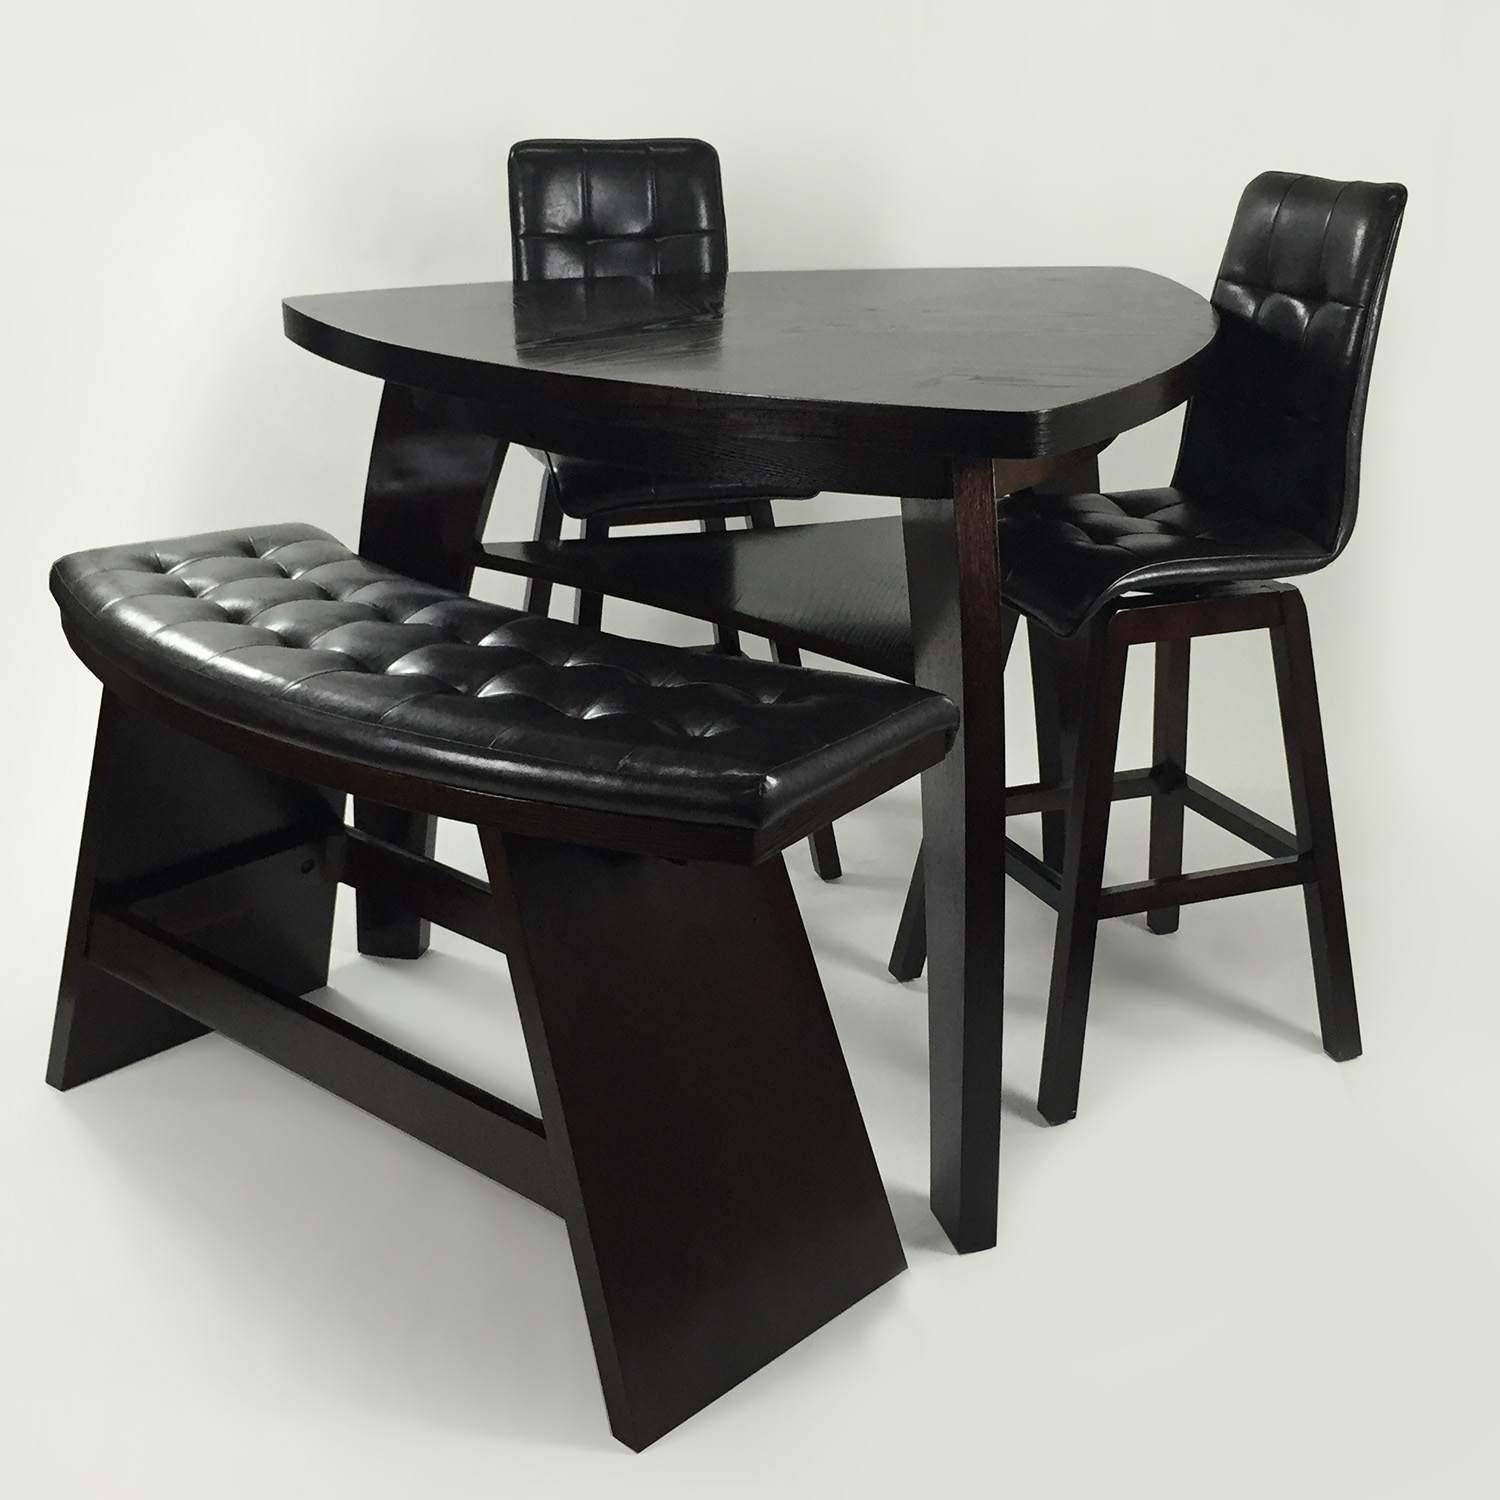 49% OFF Bob s Furniture Boomerang 4 Piece Bar Stool & Bench Set